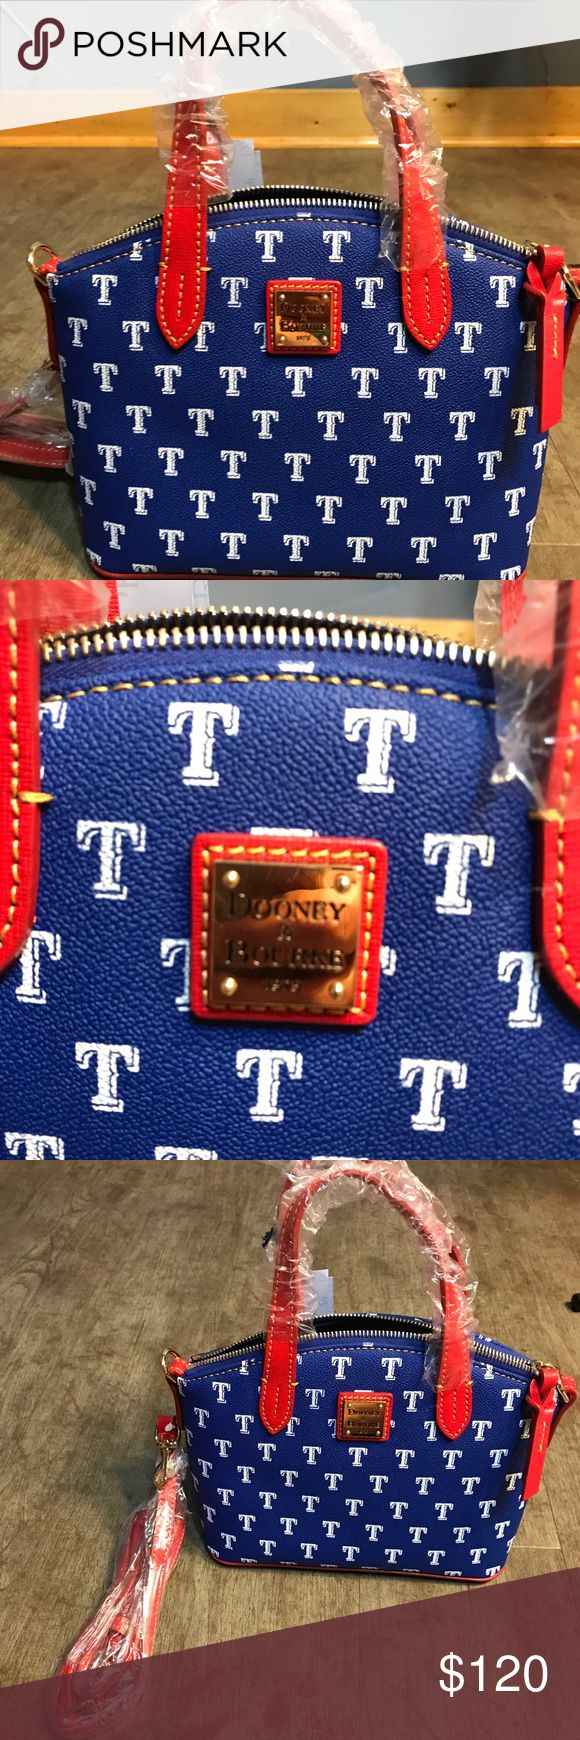 Dooney and Bourke Texas rangers tote NWT Dooney and Bourke MLB Texas Rangers tote ruby red Team pride is in full swing with this coated cotton MLB Collection. This bag is a favorite casual carry-all that's hands-free and versatile, perfect for work or errands. Major League Baseball trademarks and copyrights are used with permission of Major League Baseball Properties, Inc. One inside zip pocket. Two inside pockets. Cell phone pocket. Inside key hook. Handle drop length 3.5 in. Strap drop…